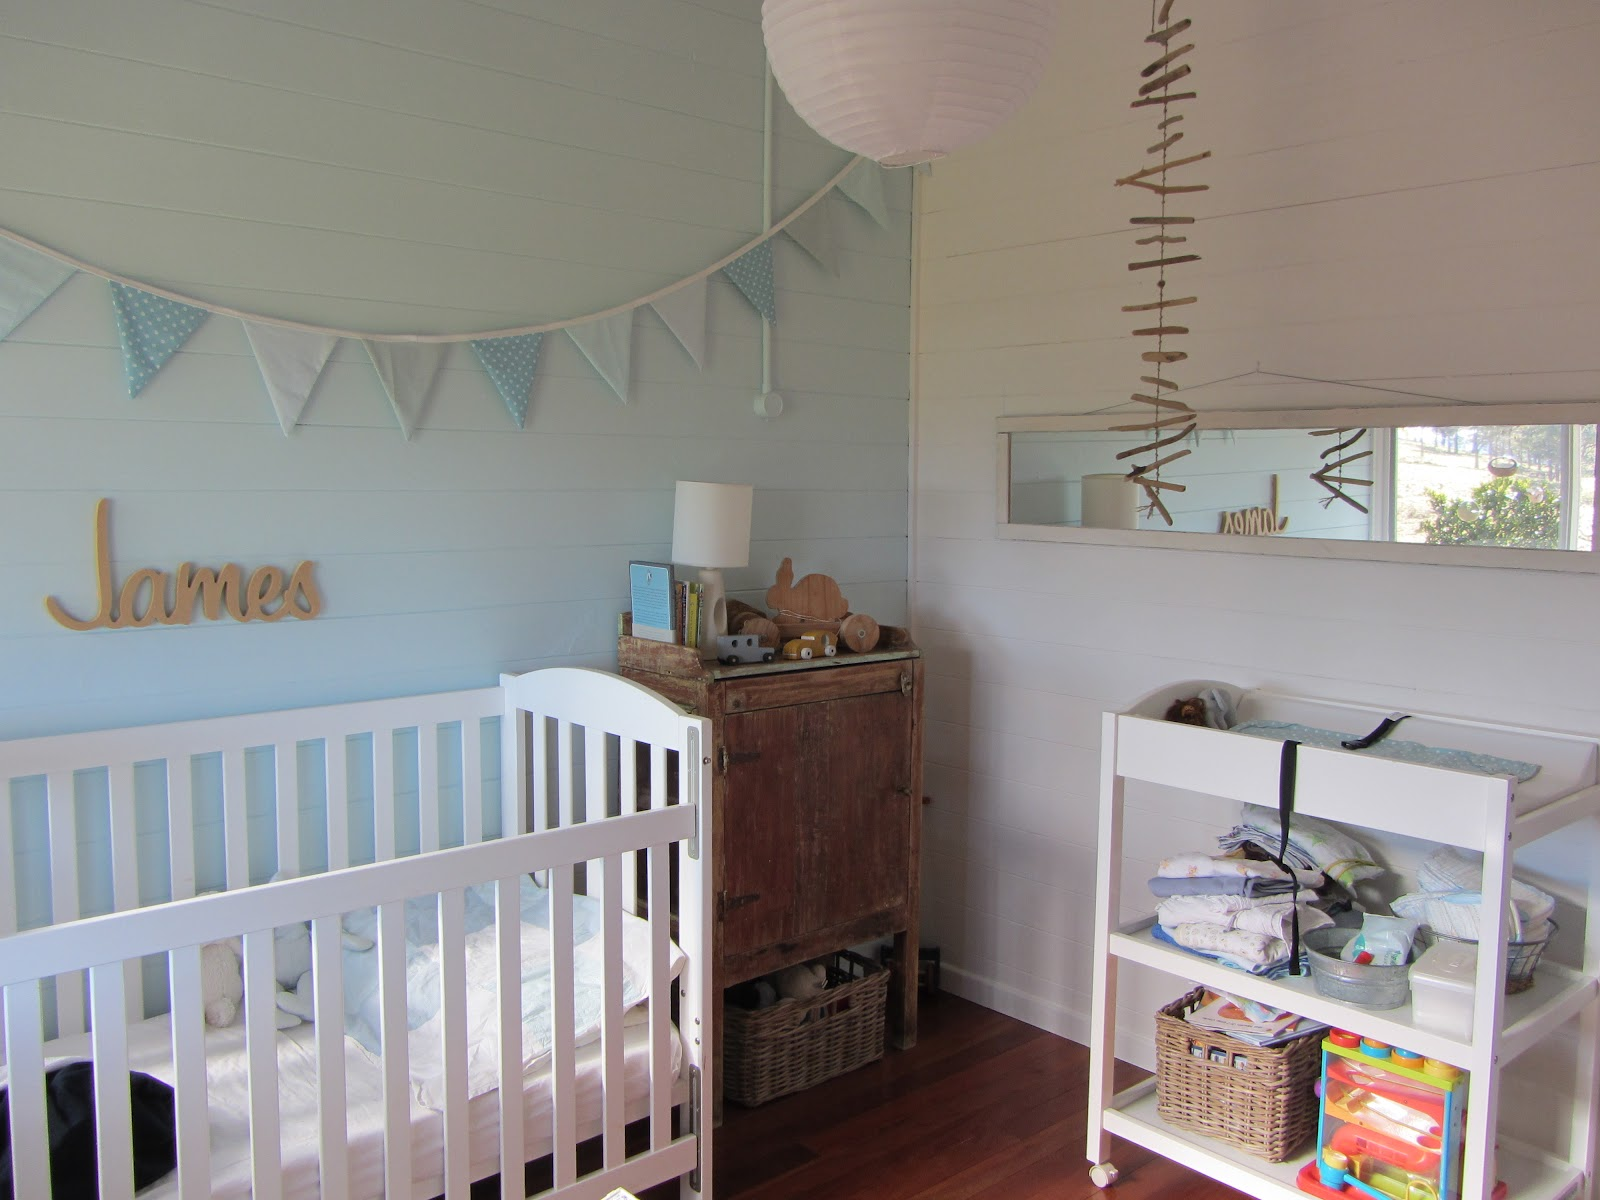 Thom haus handmade soft colours for a baby boy s bedroom for Baby bedroom design